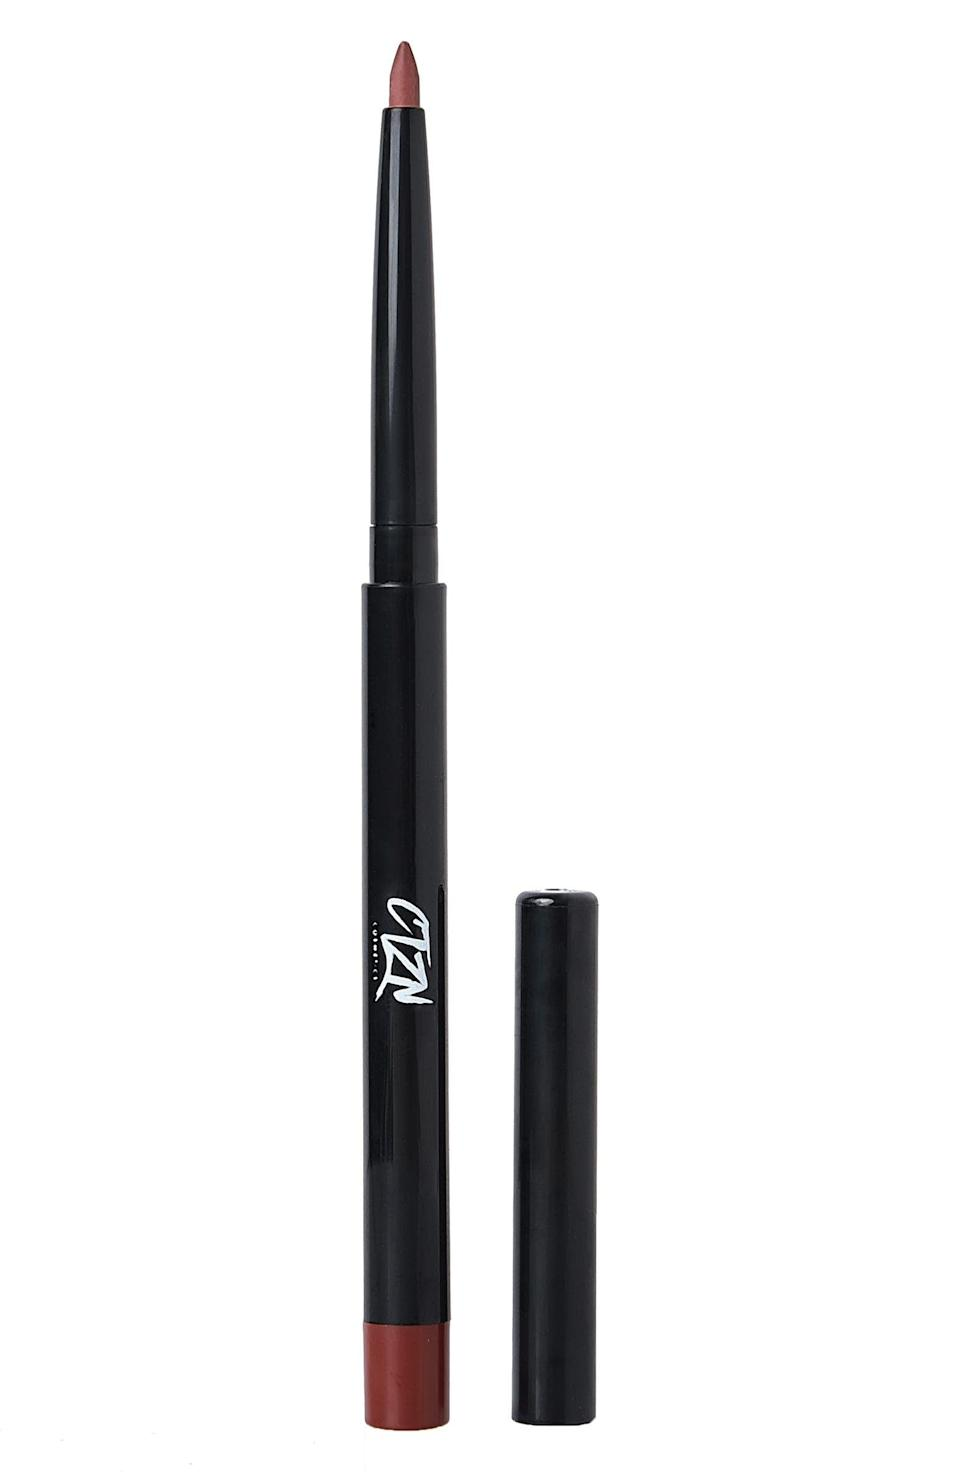 <p>For a more intense and glam look, pair the <span>Ctzn Cosmetics Nudiversal Lip Duo</span> ($25) with the retractable <span>CTZN Cosmetics Lipstroke Waterproof Lip Liner</span> ($16). It's creamy, soft, and nondrying with a bold, high-intensity color payoff. It has a sharpener attached so you can get a precise line every time.</p>